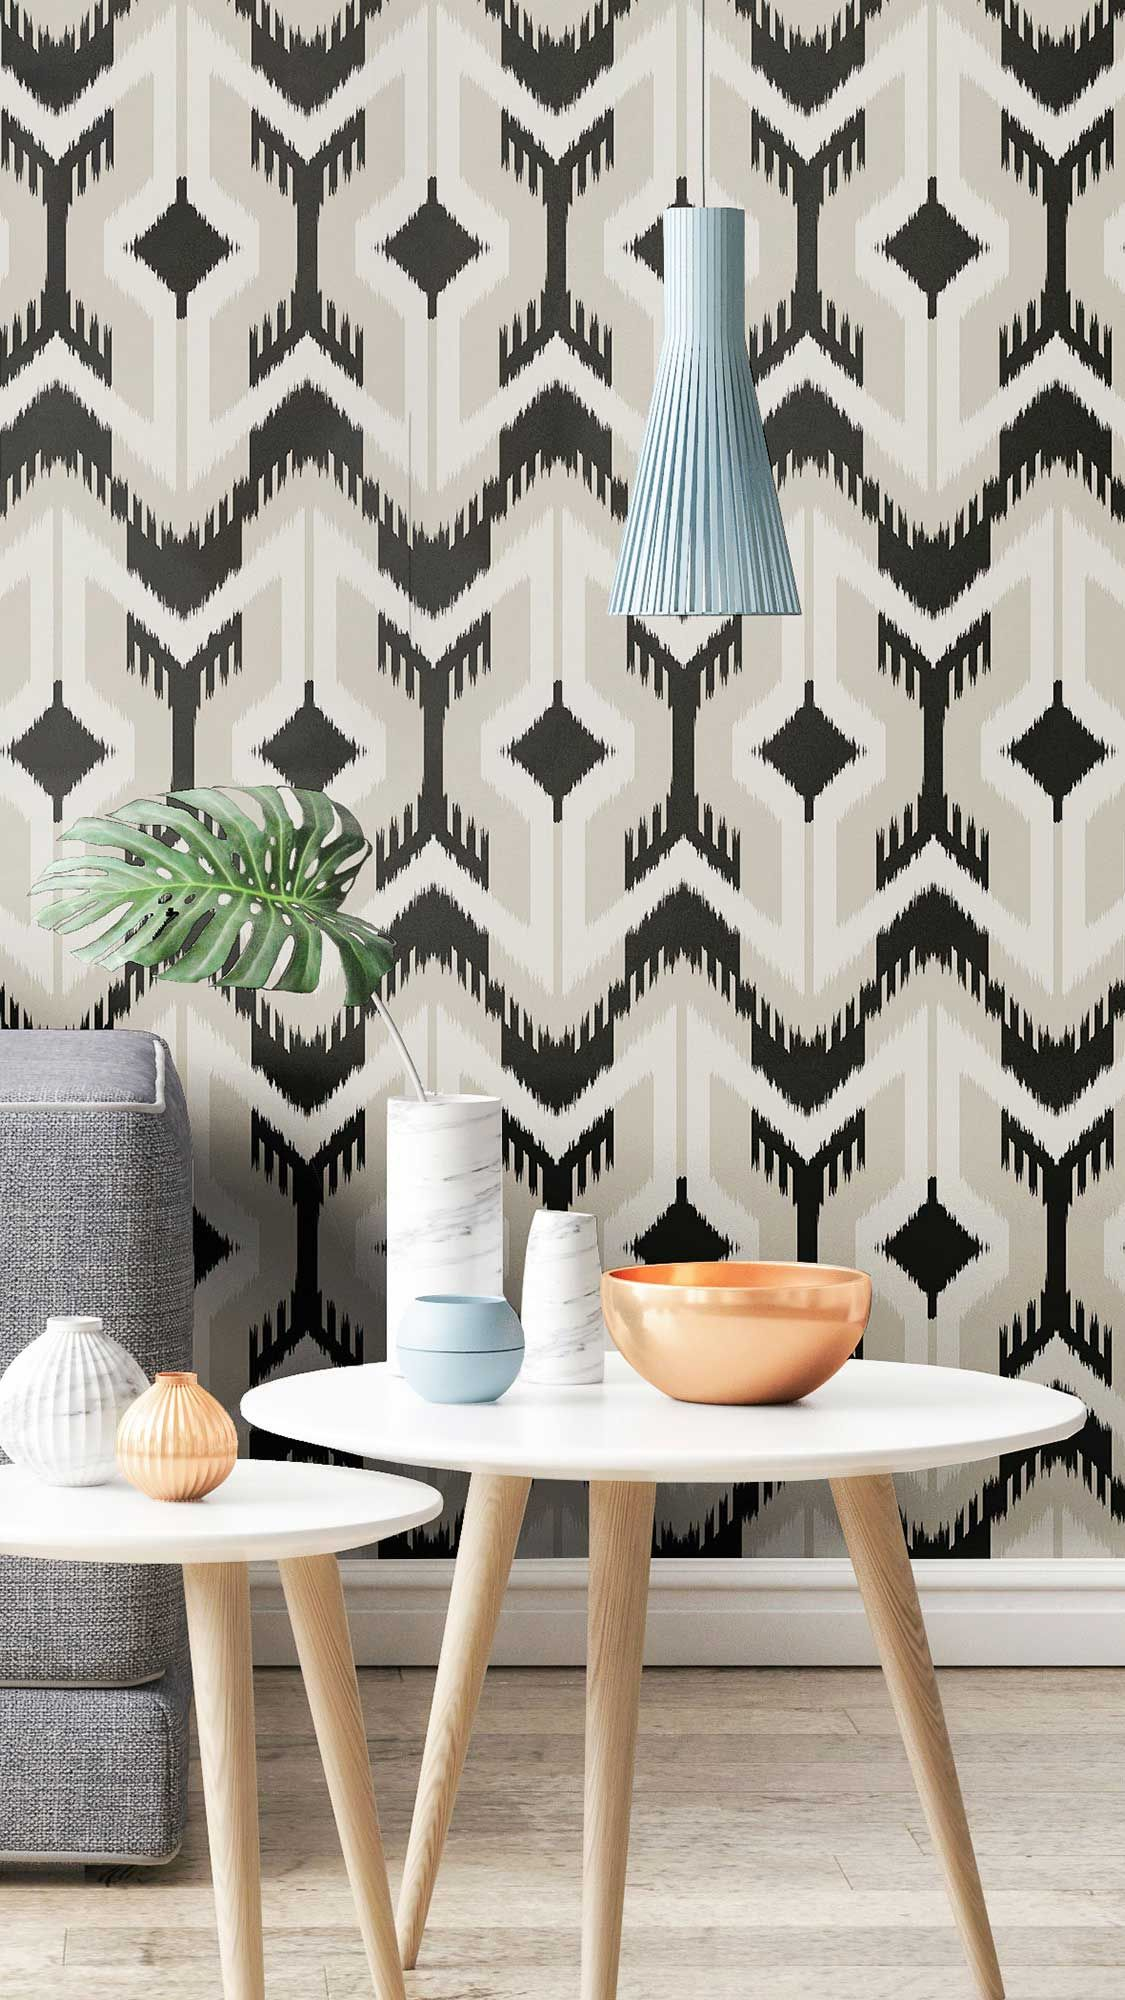 Black And White Contemporary Geometric Peel And Stick Fabric Removable Wallpaper 2338 Removable Wallpaper Geometric Removable Wallpaper Accent Wall Decor